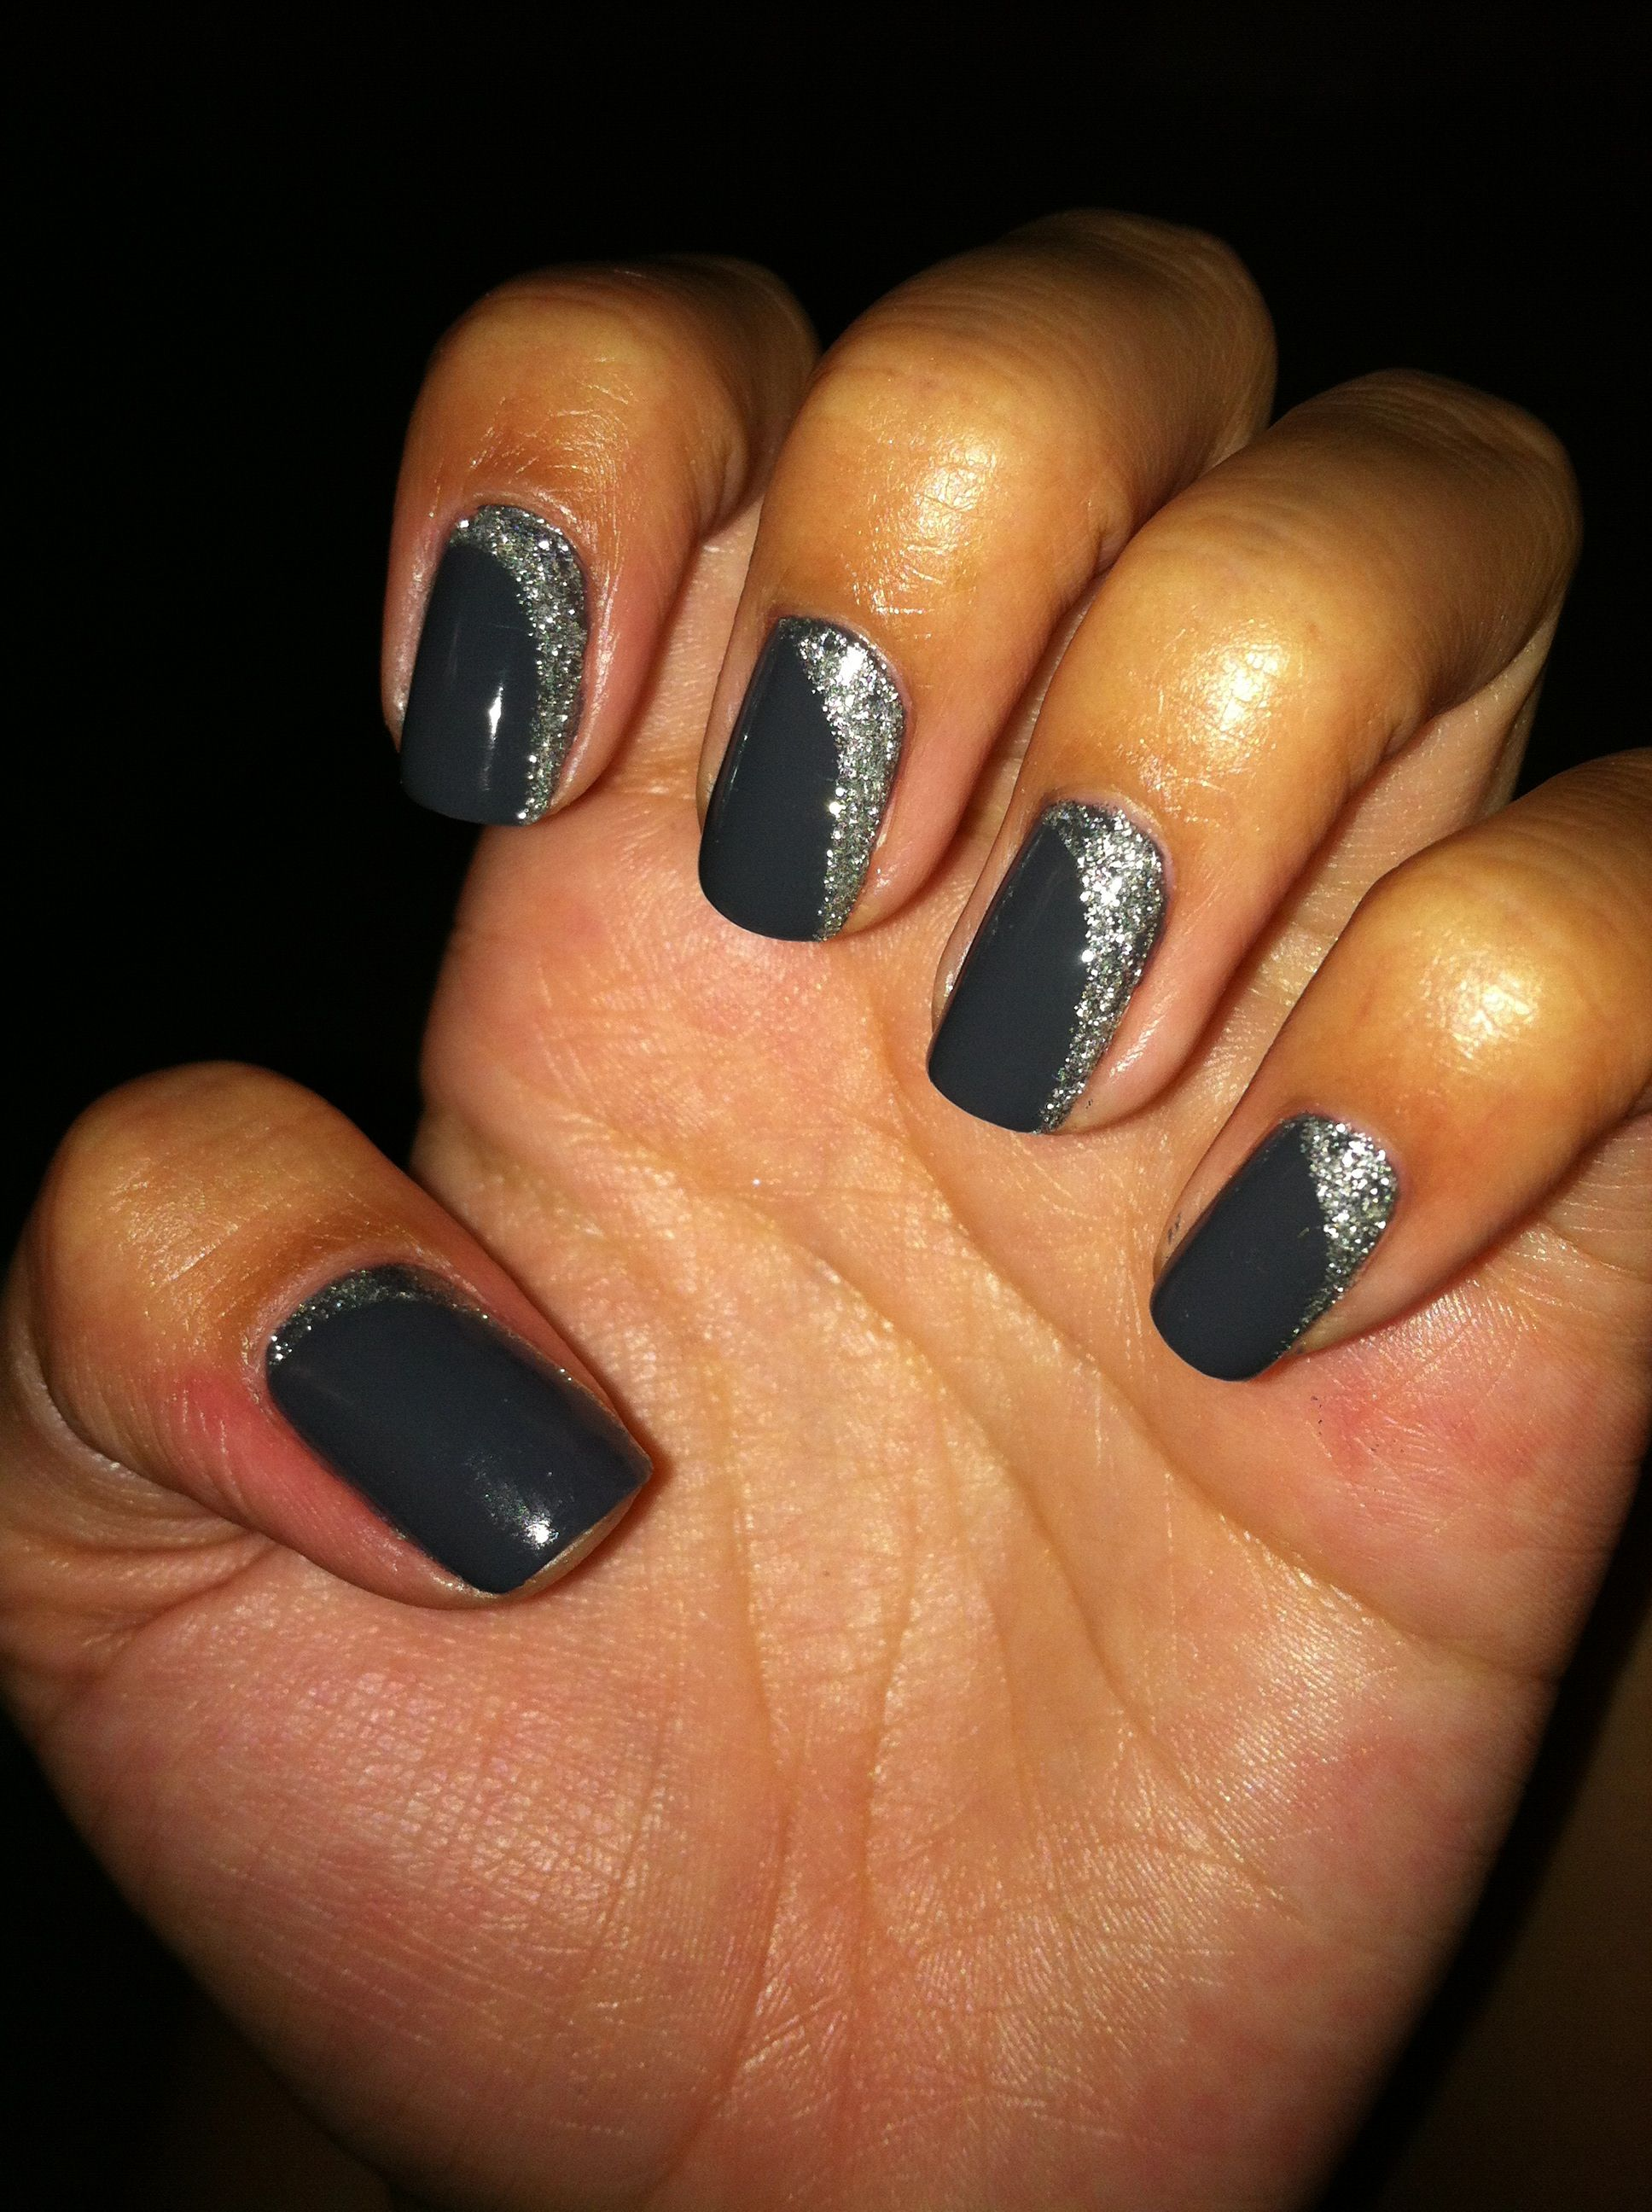 #asphalt #shellac # CND #nails Pretty :)